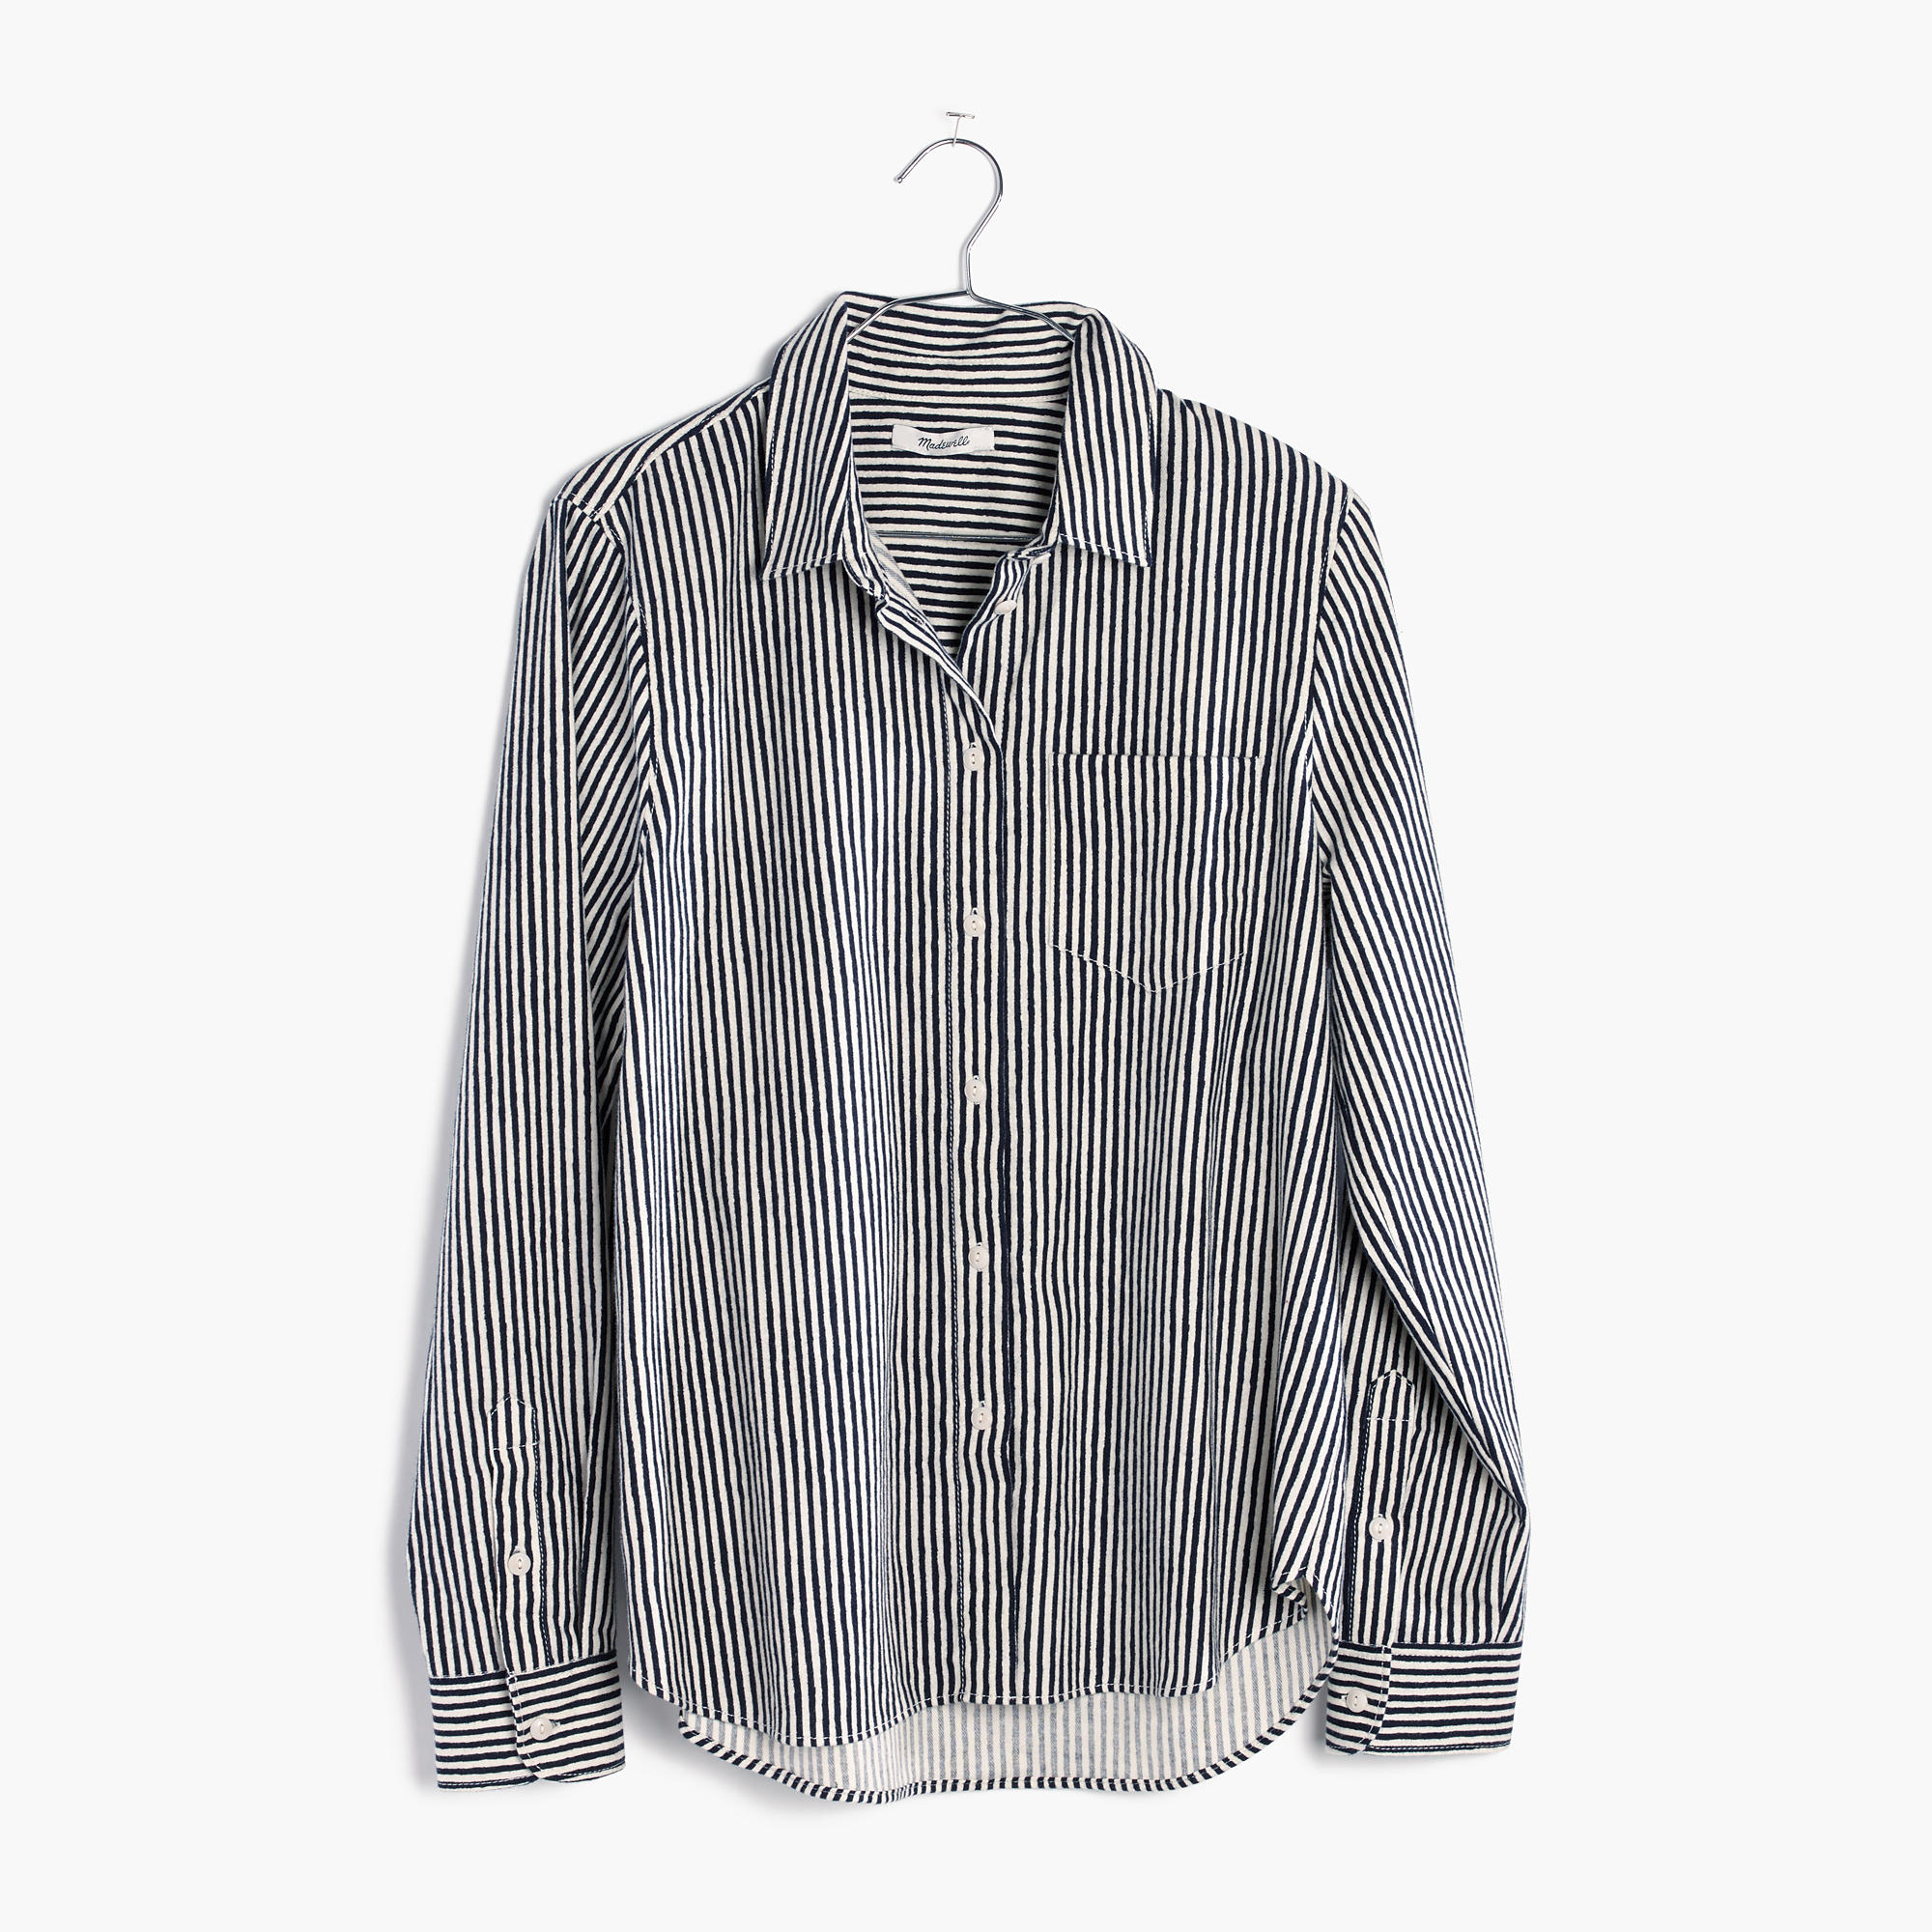 Madewell shirt—striped shirts